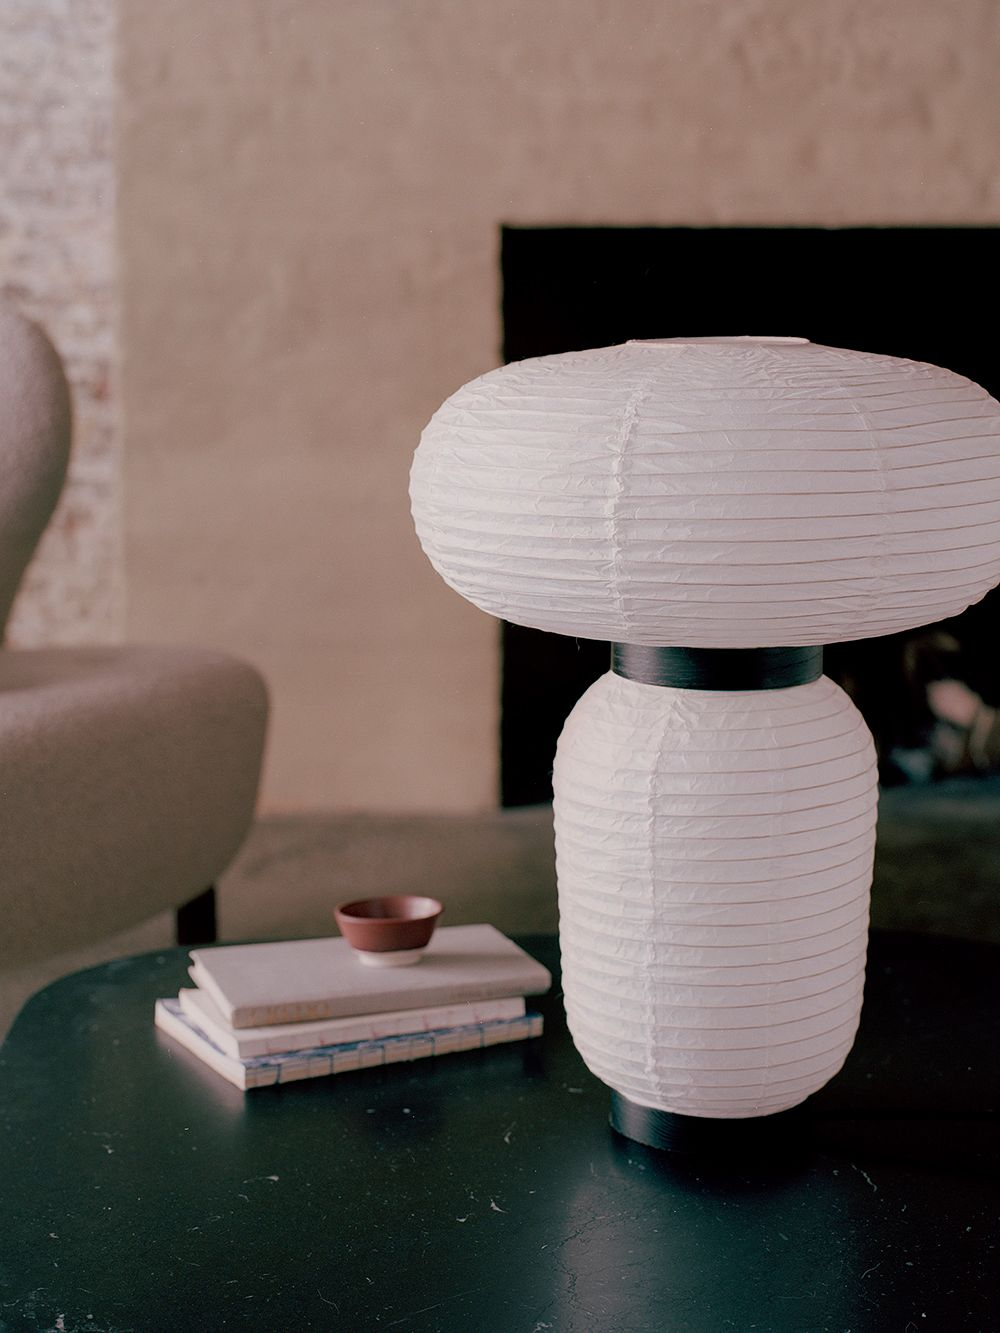 &Tradition's Formakami JH18 table lamp on a coffee table.